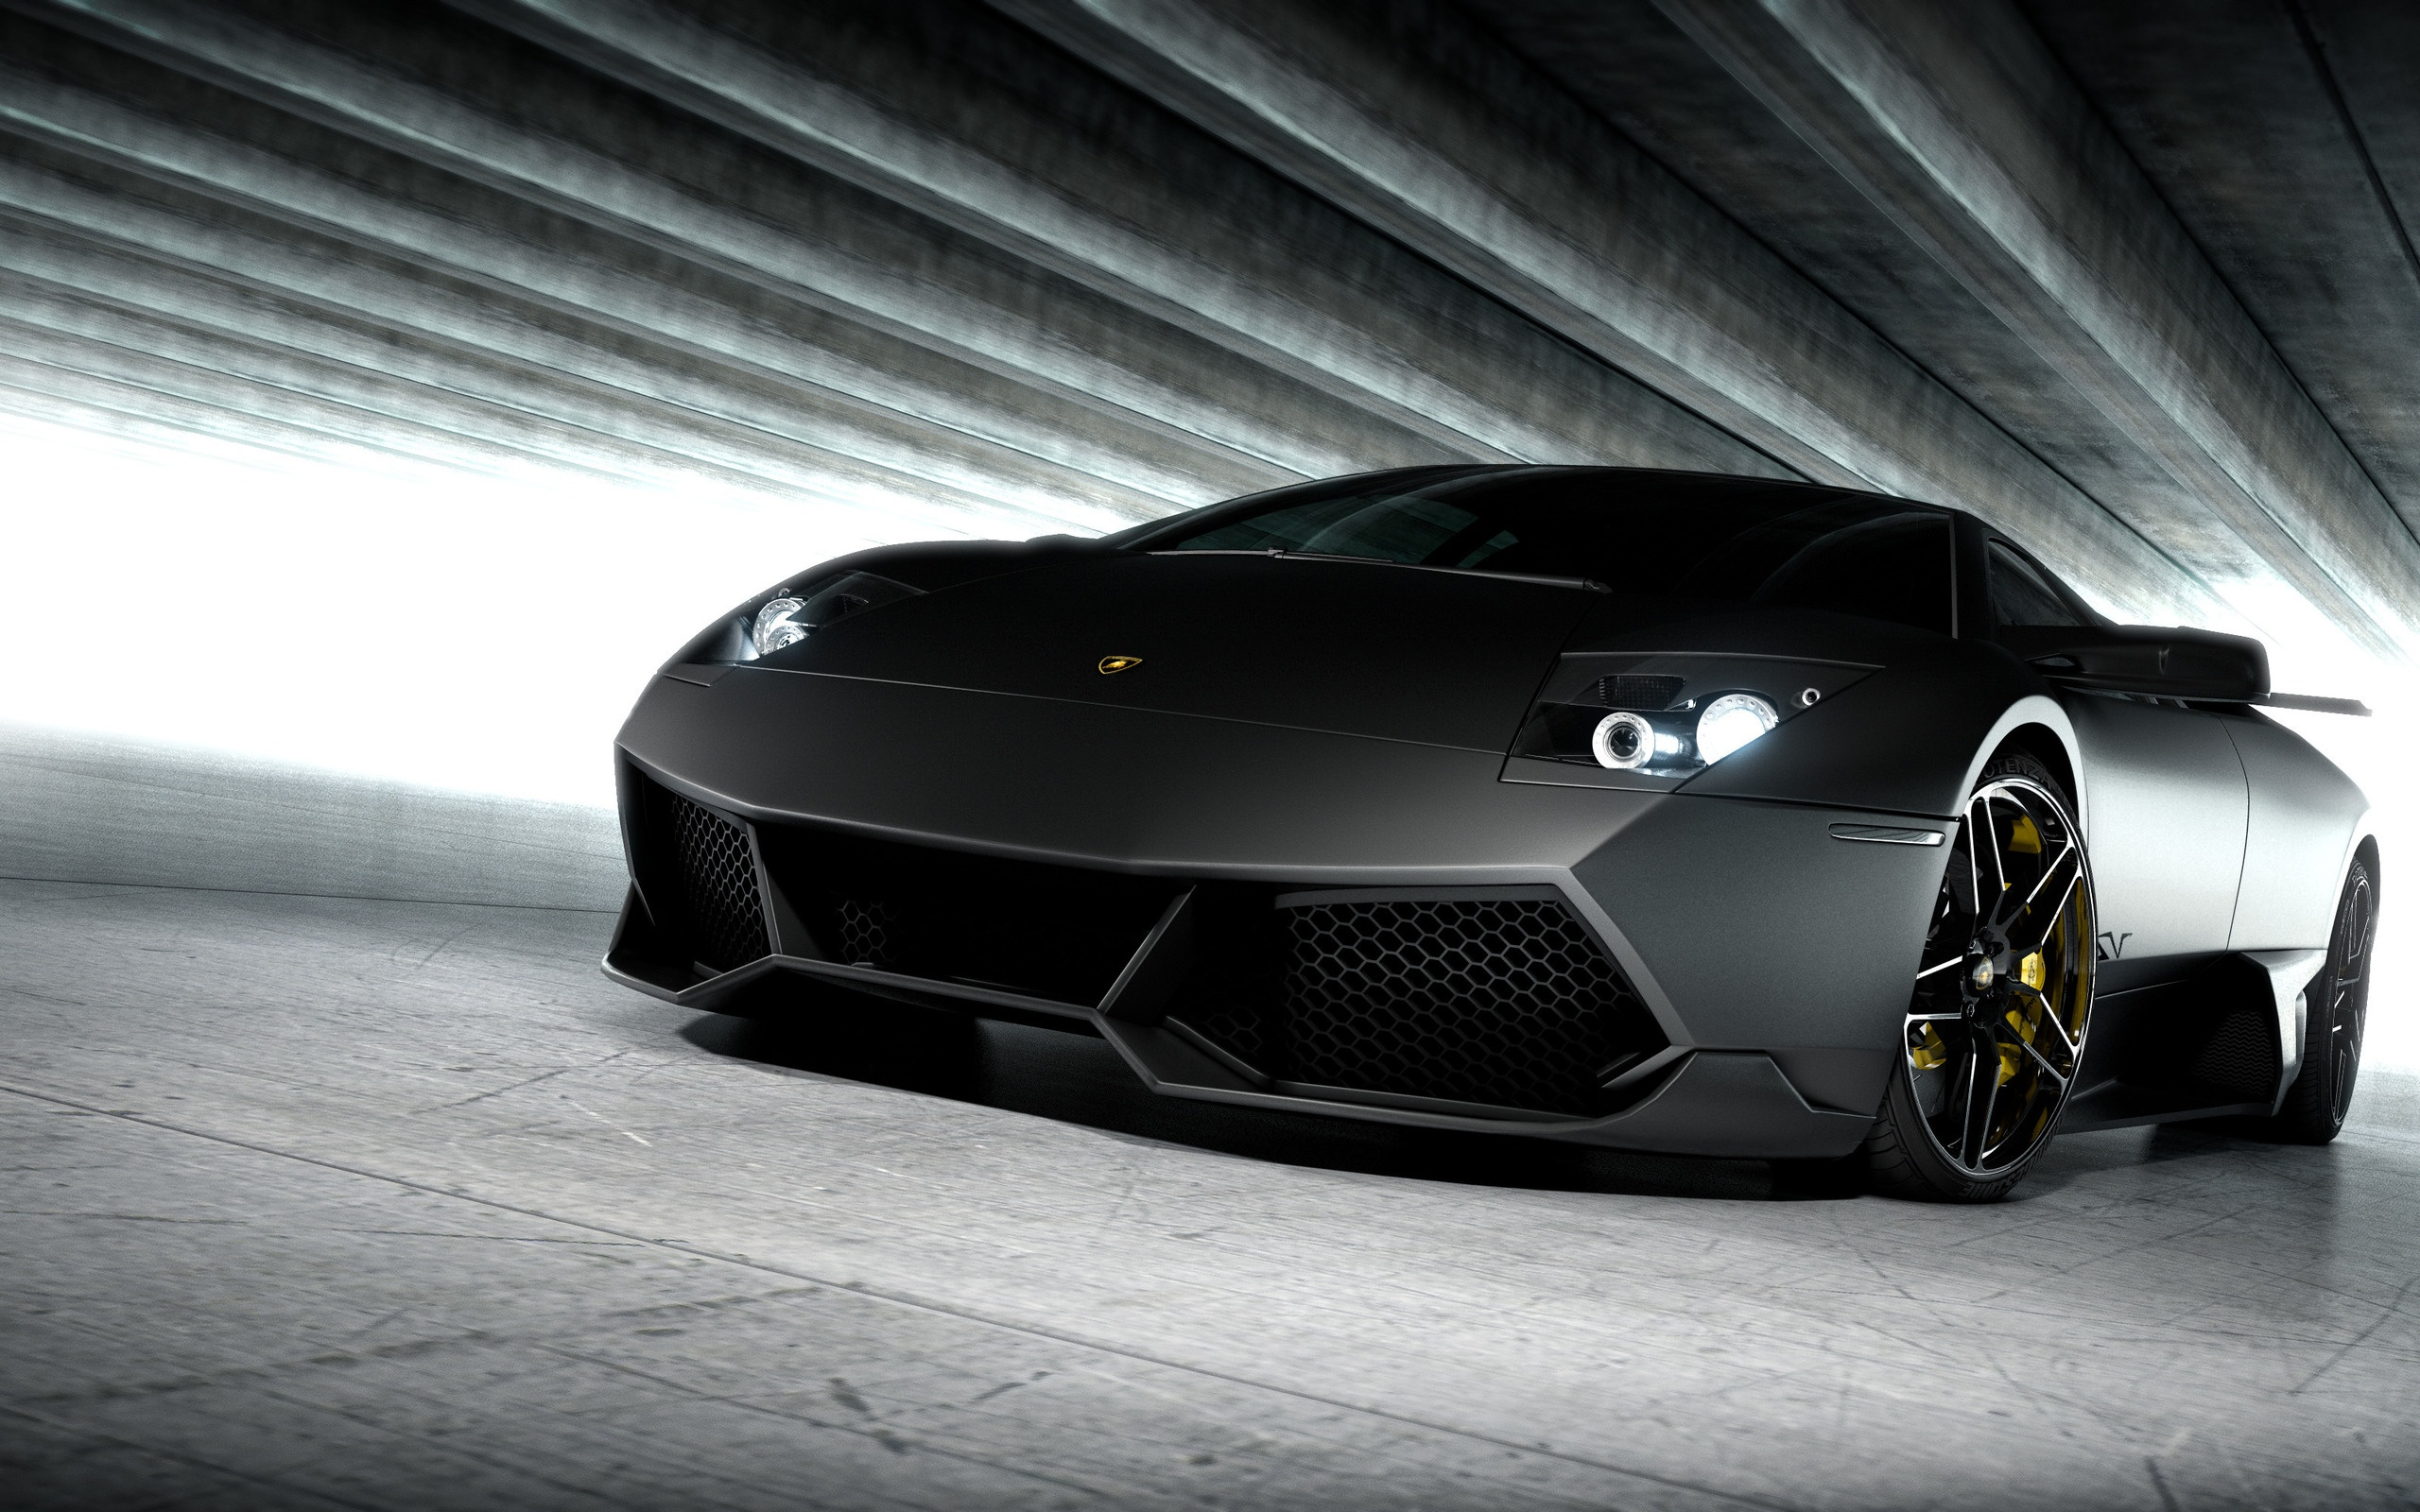 Stunning Lamborghini Wallpapers HD Wallpapers 2560x1600